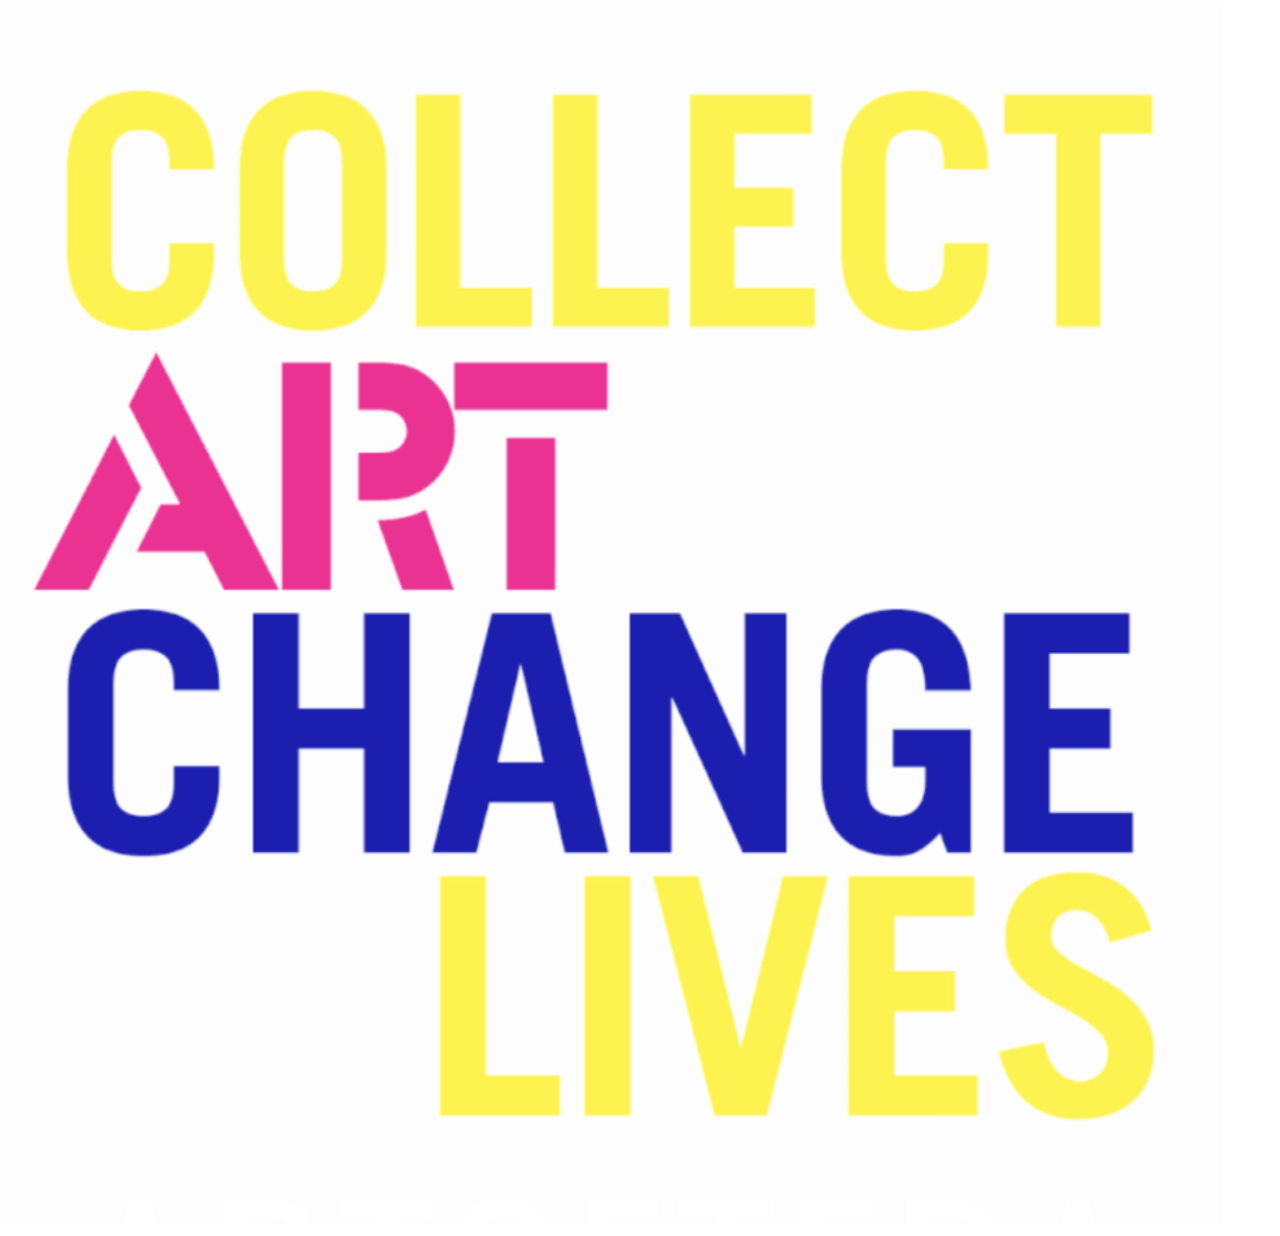 #COLLECTWITHINTENTION - Founded in 1985, by a collective of activist and artists in response to the AIDS epidemic, the legacy of ARTcetera continues to benefit AIDS Action in their mission of getting to zero deaths, zero new infections and zero stigma by 2030.